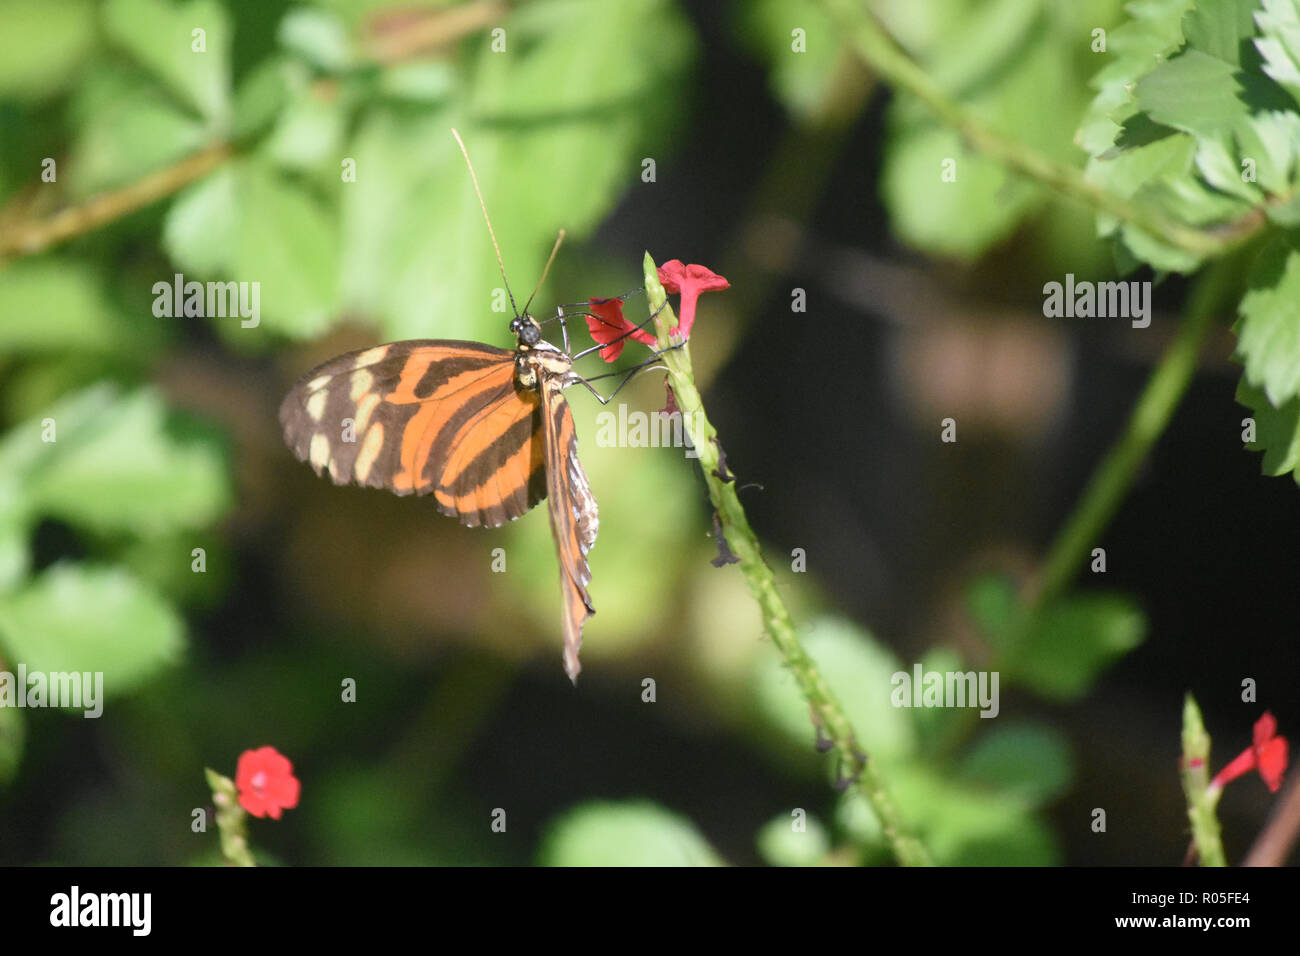 Flower garden with an orange and black tiger longwing butterlfy. - Stock Image